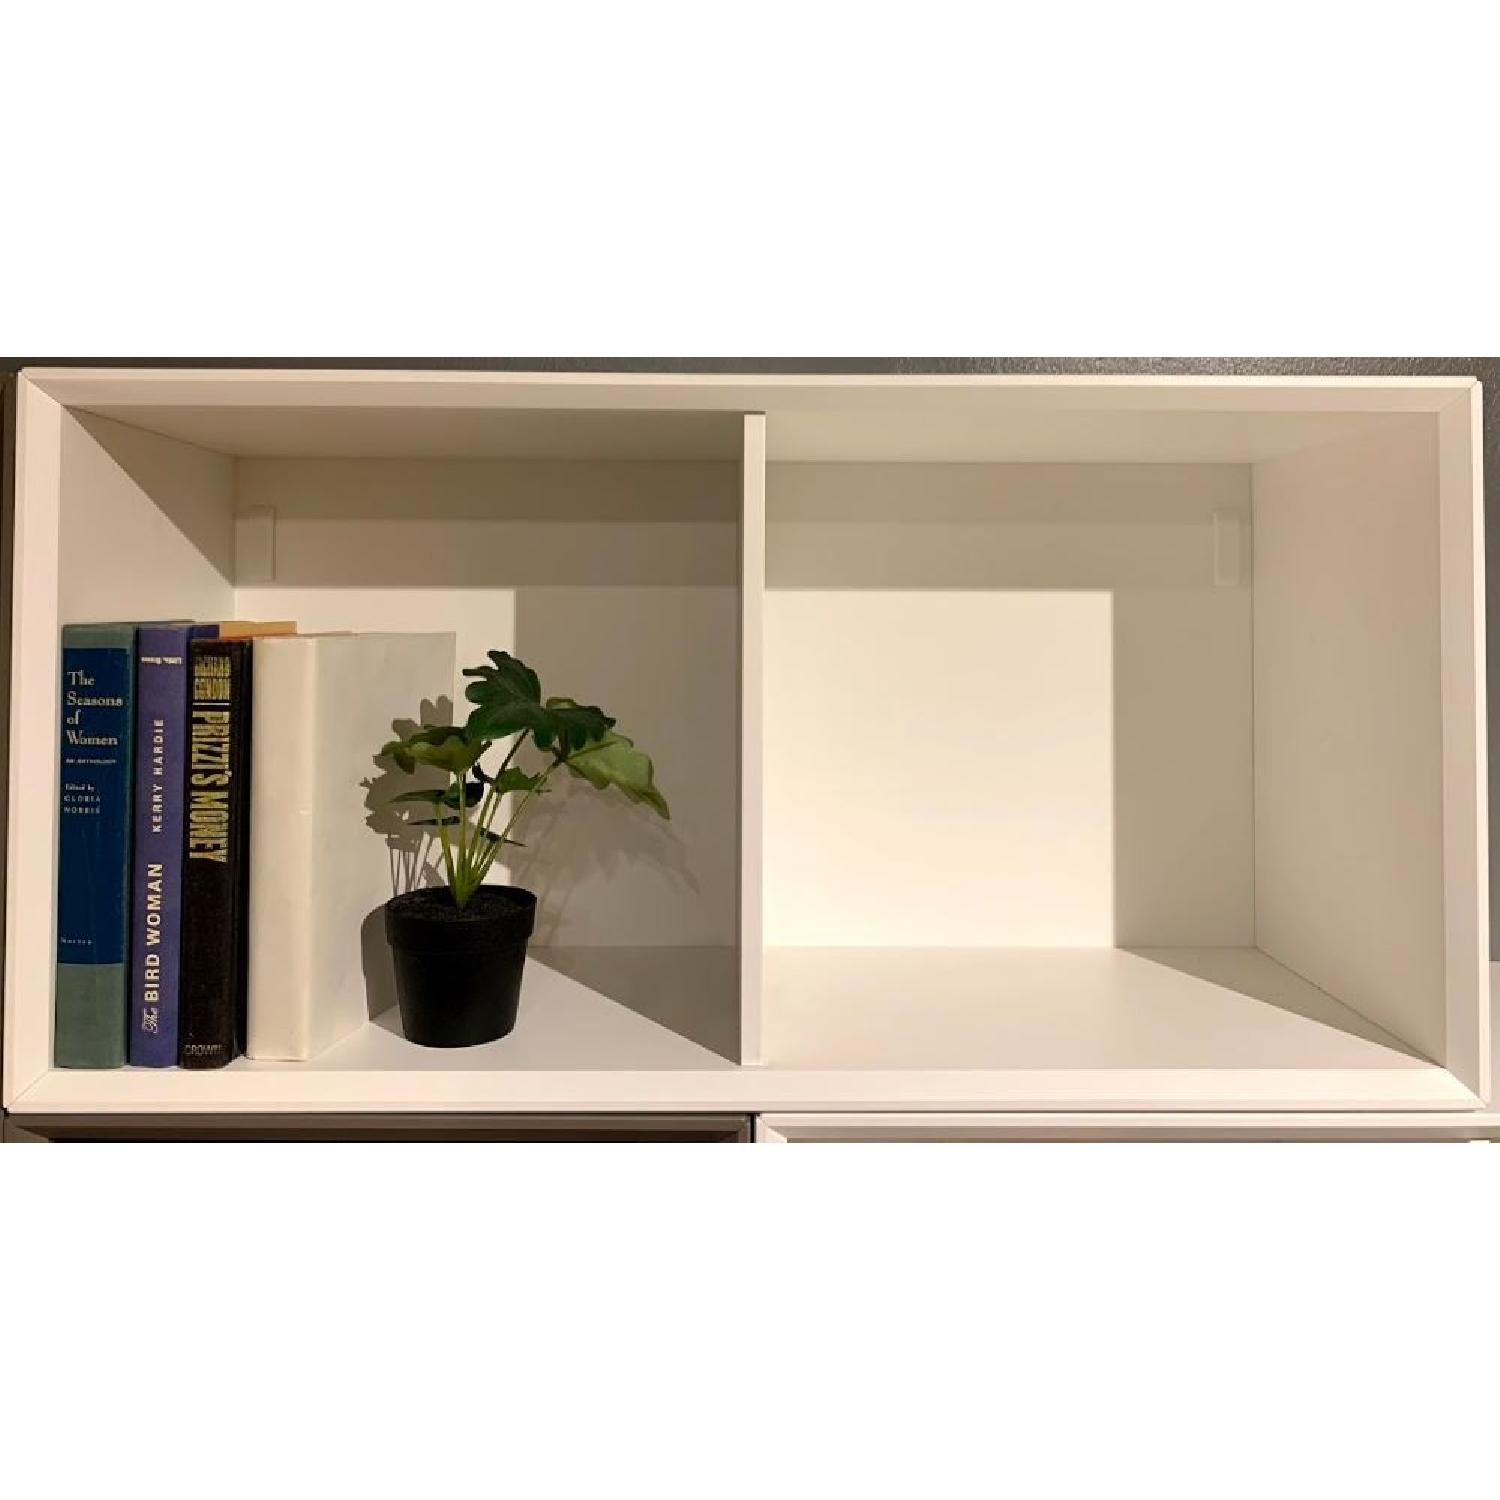 Calligaris Inside Wall Units - image-5